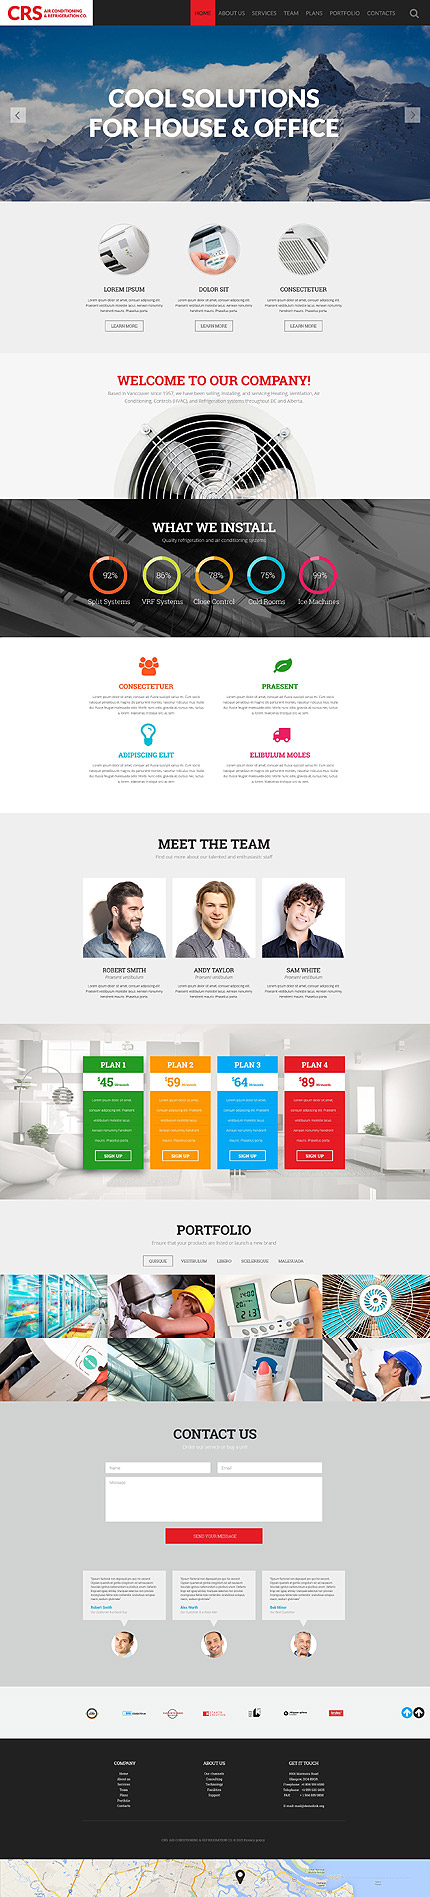 Air Conditioning Manufacturer Website Template